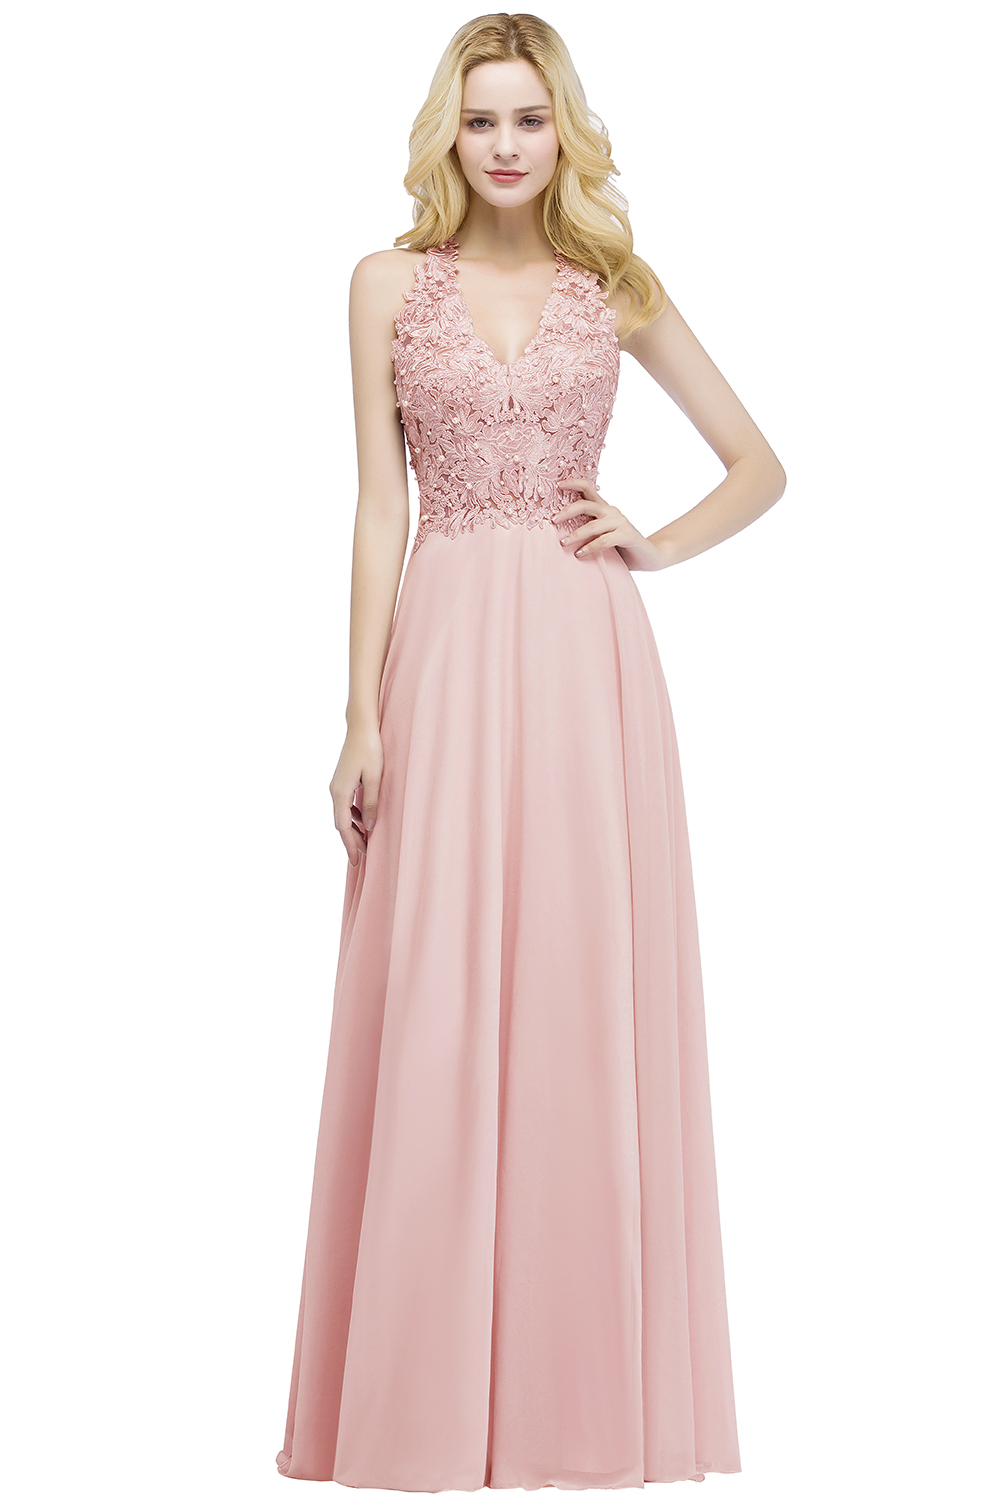 Elegant A Line Illusion Back with Pearls Floor Length Evening Dress 7